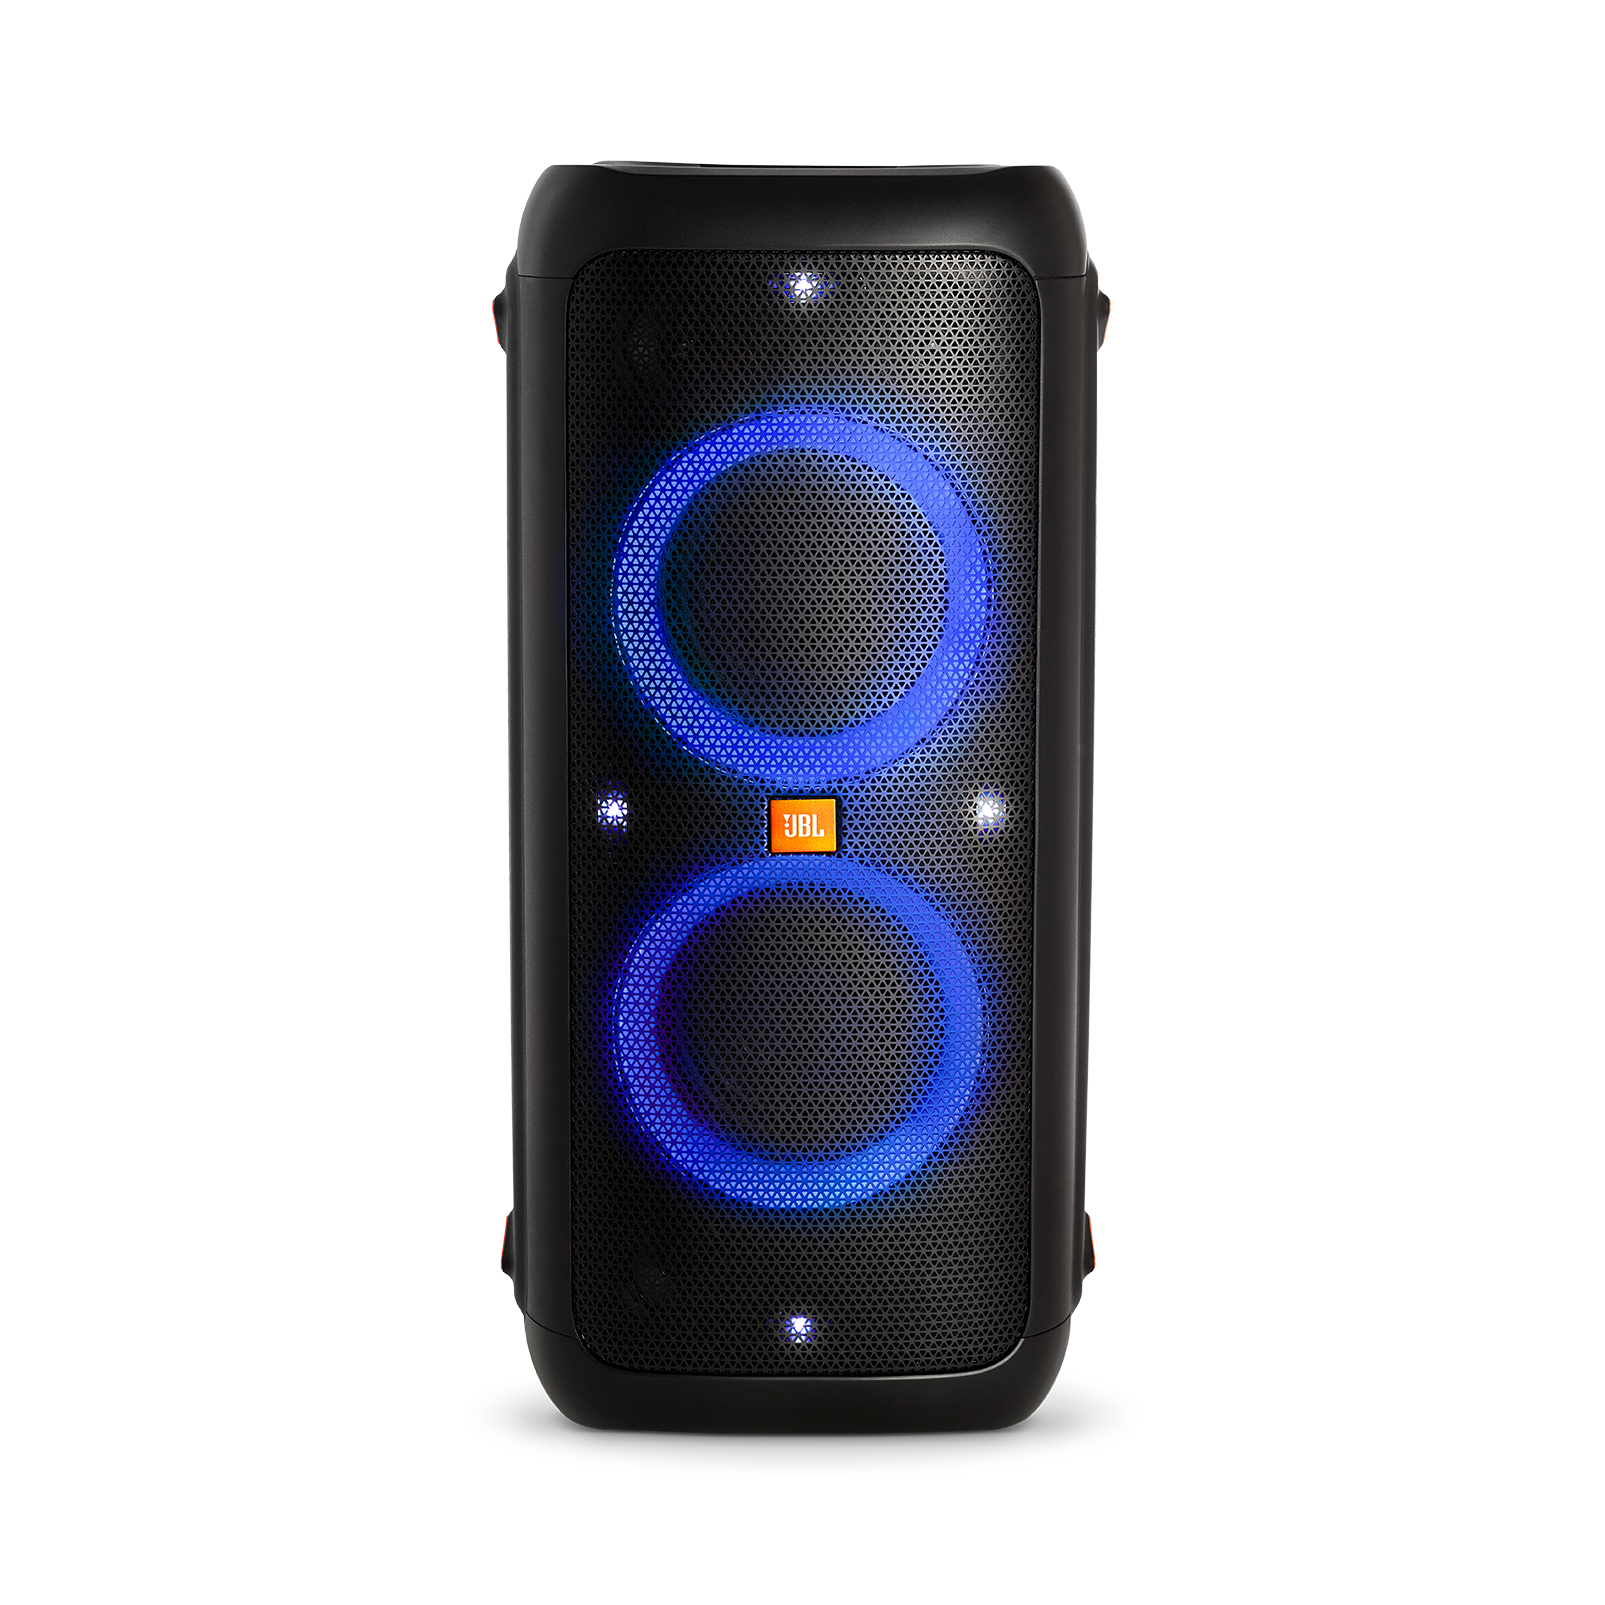 Jbl Partybox 300 Battery Powered Portable Bluetooth Party Speaker With Light Effects